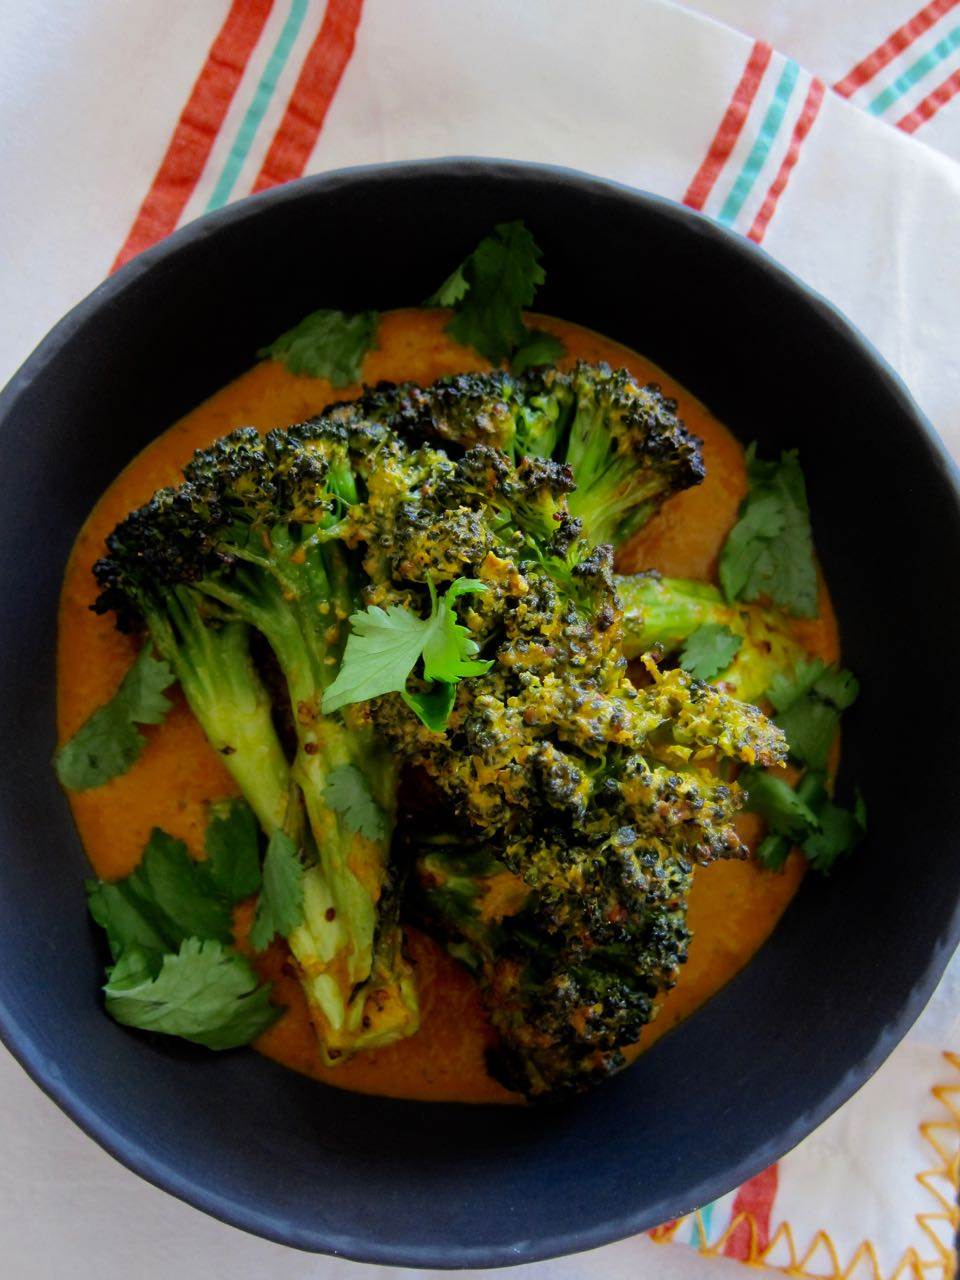 Roasted broccoli & tikka masala